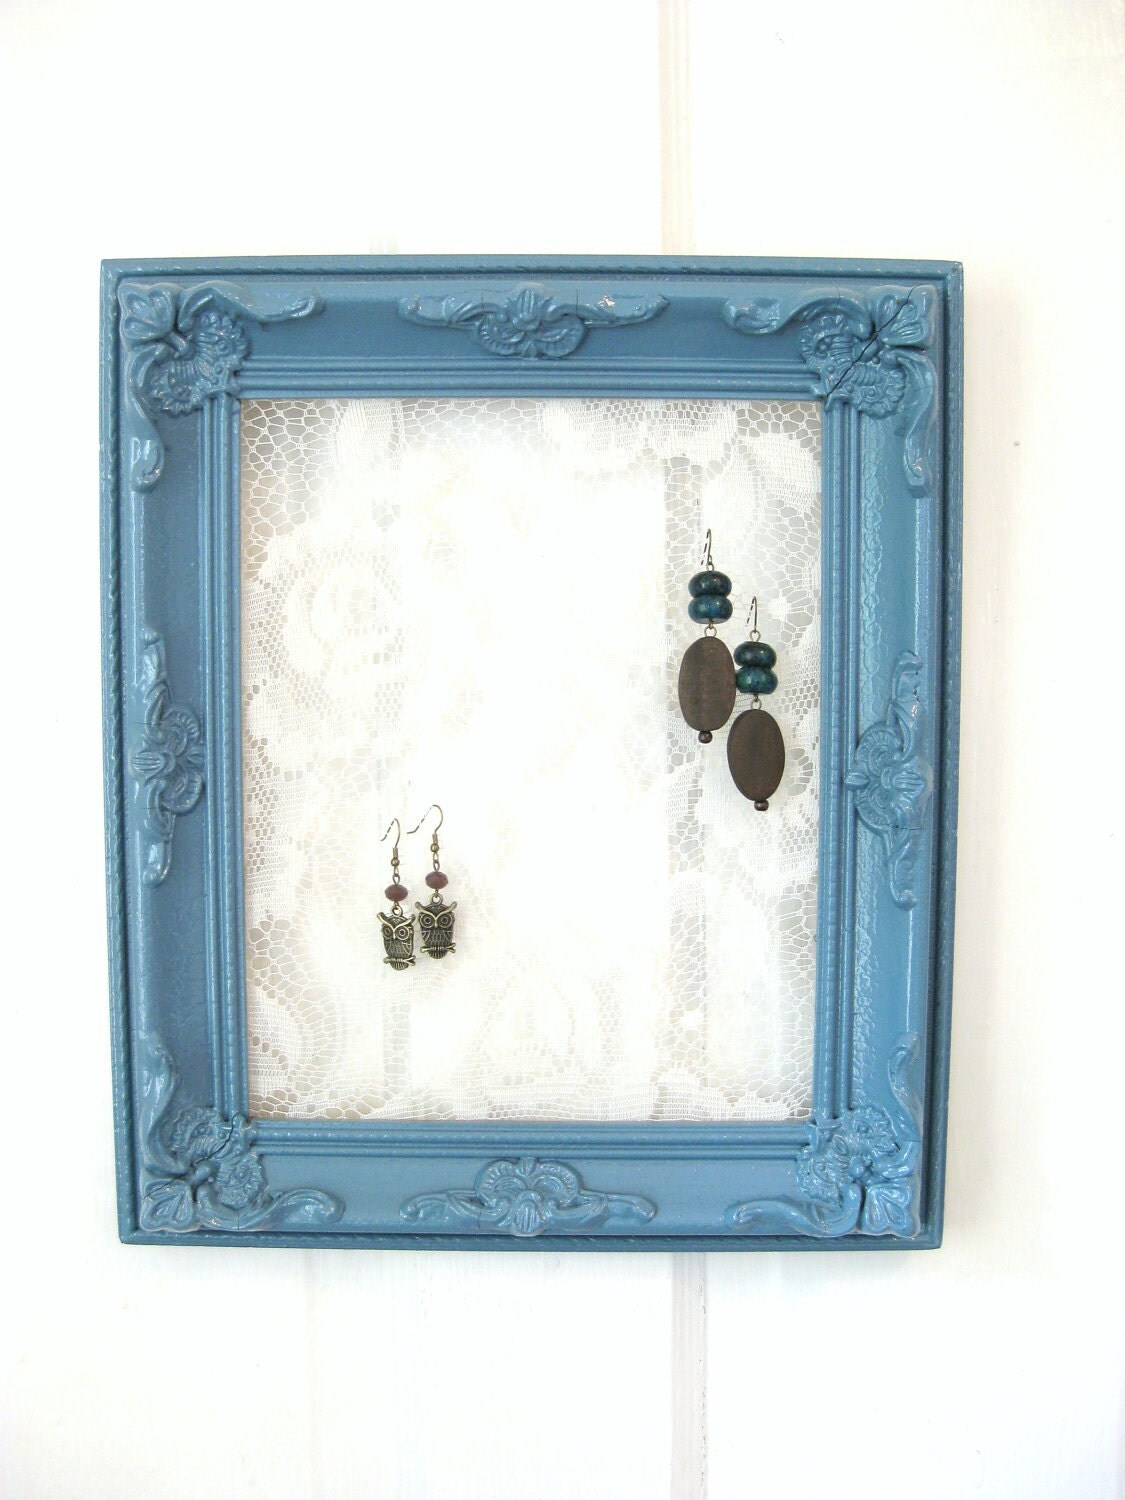 Upcycled Jewelry Frame, Painted Frame, Lace